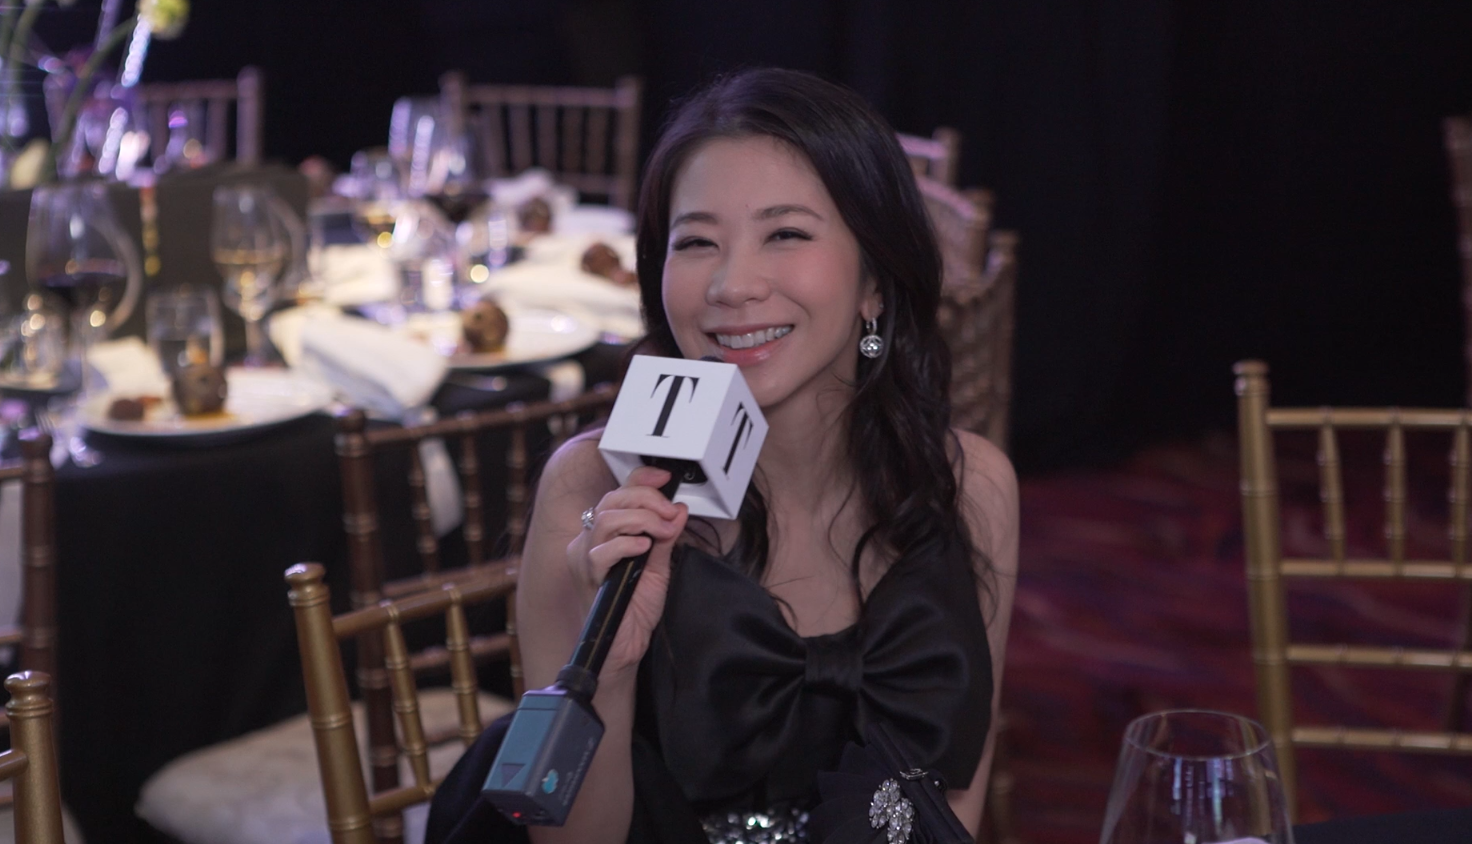 Video: Hong Kong Tatler Ball 2017 Guests Share Their Fondest Memories